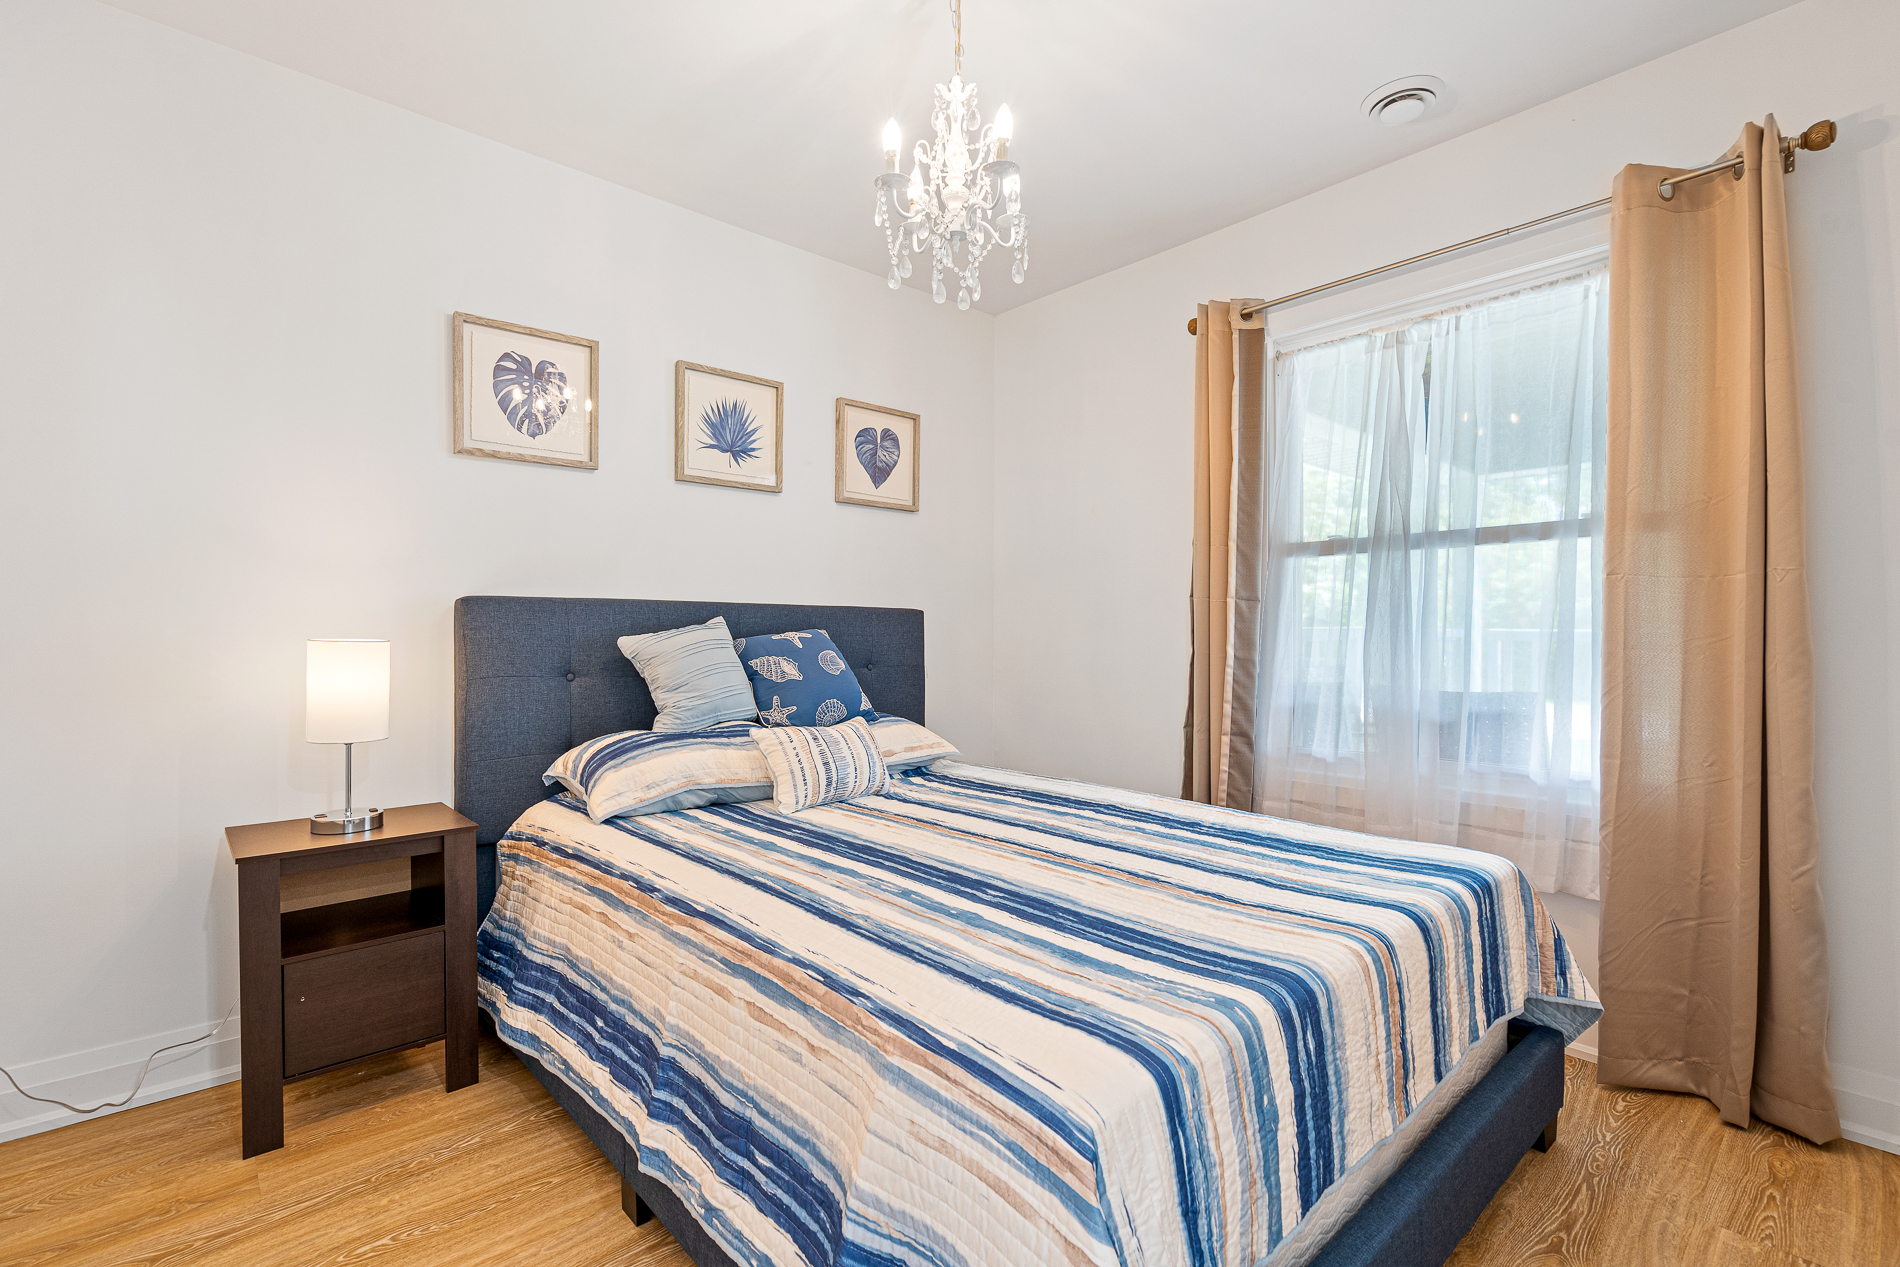 Sapphire Shores - Crystal Beach - Fort Erie Ontario - Vacation Cottage Rental - Bedroom 2